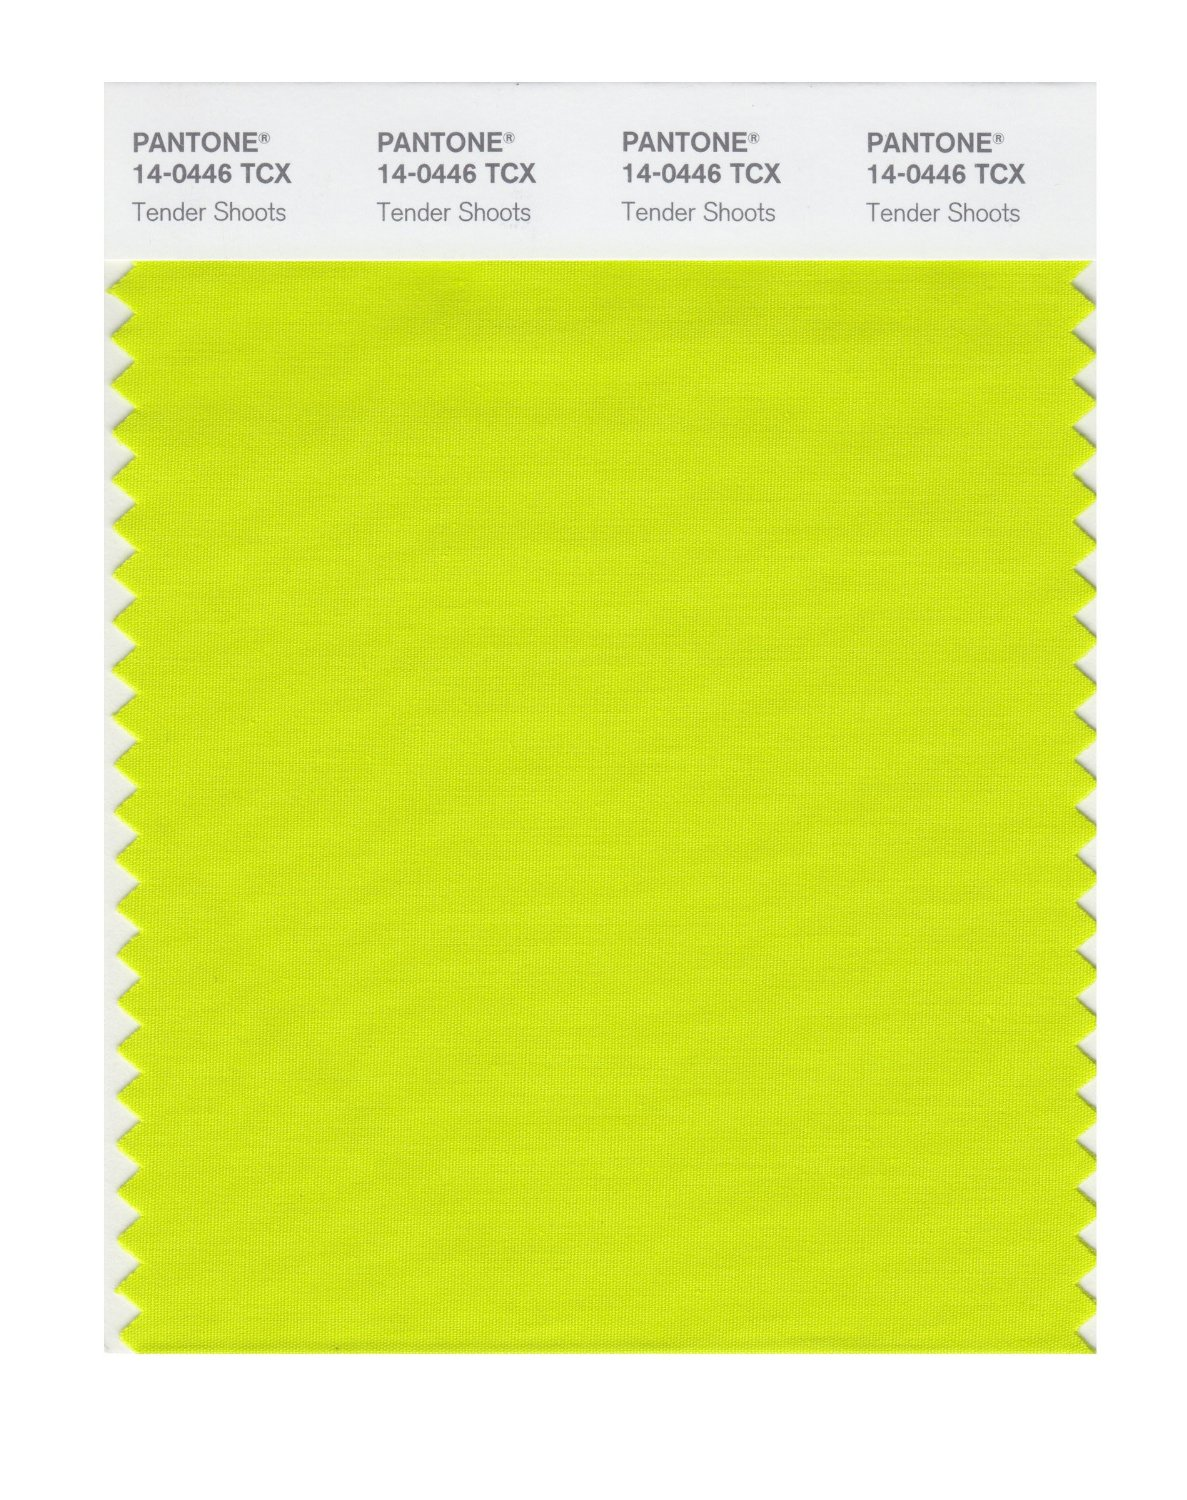 Pantone Smart Swatch 14-0446 Tender Shoots